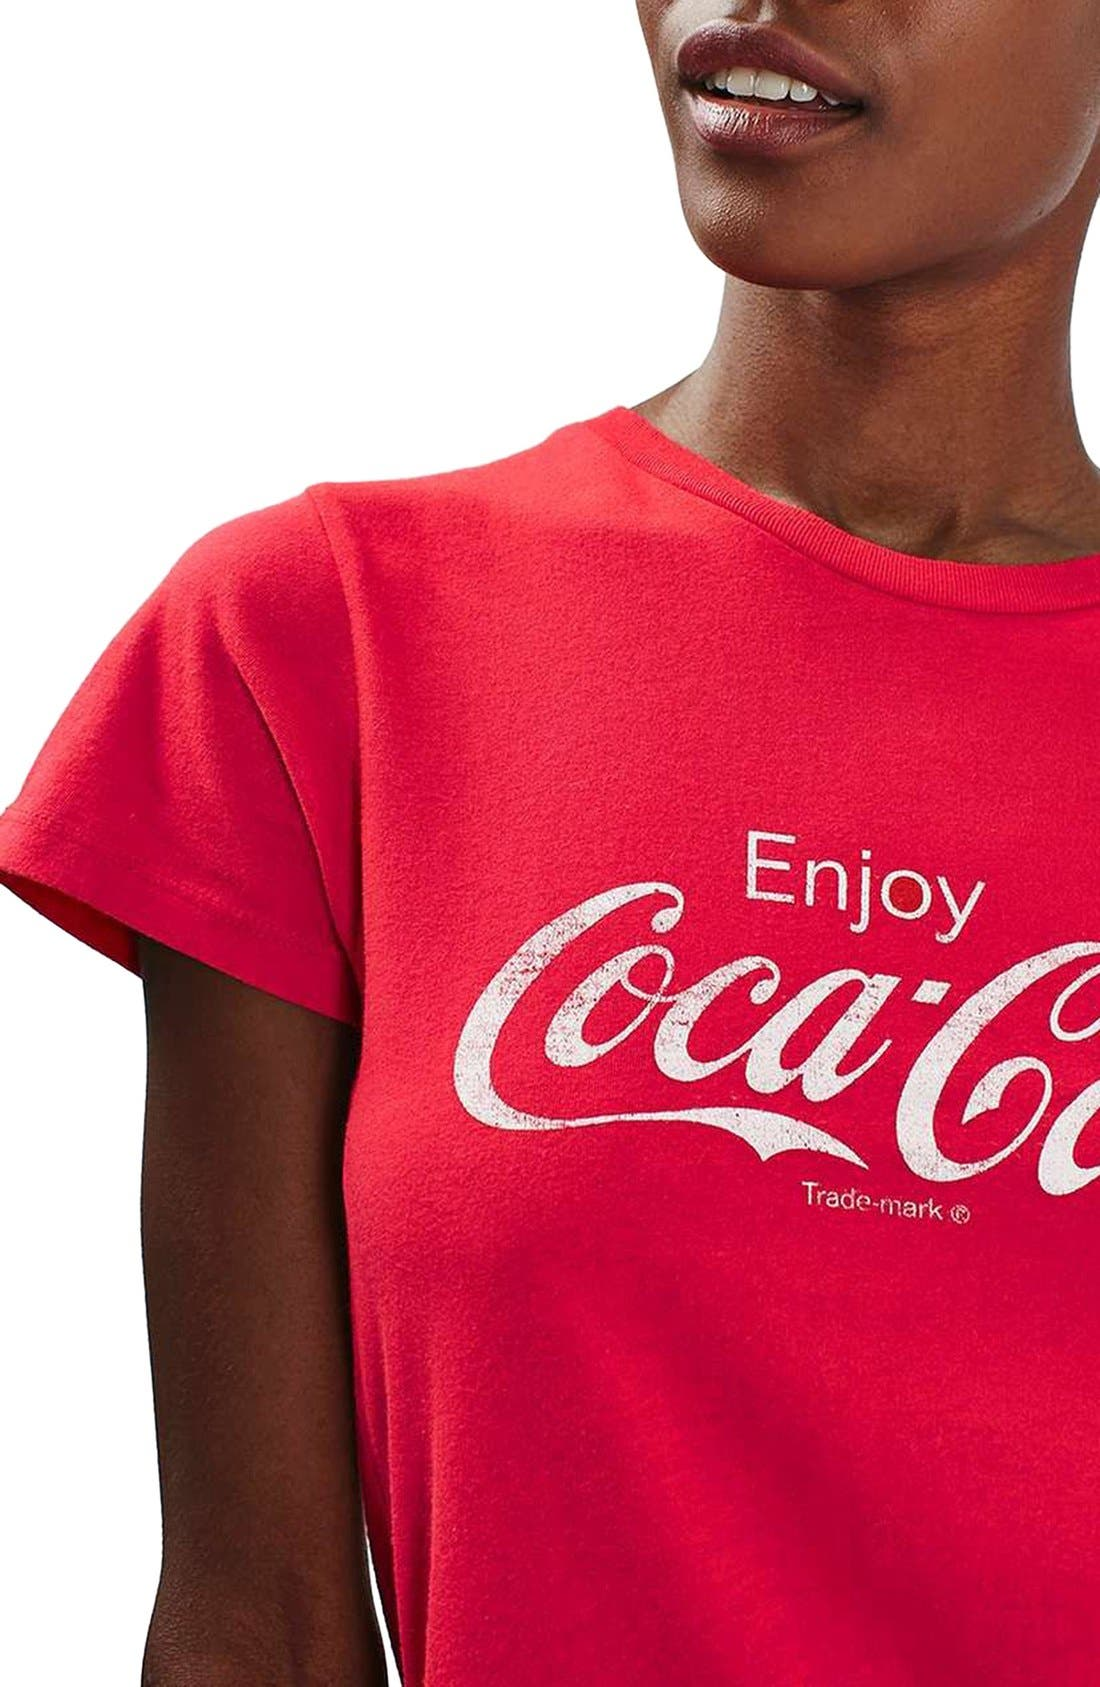 'Coca Cola' Graphic Tee,                             Alternate thumbnail 3, color,                             600